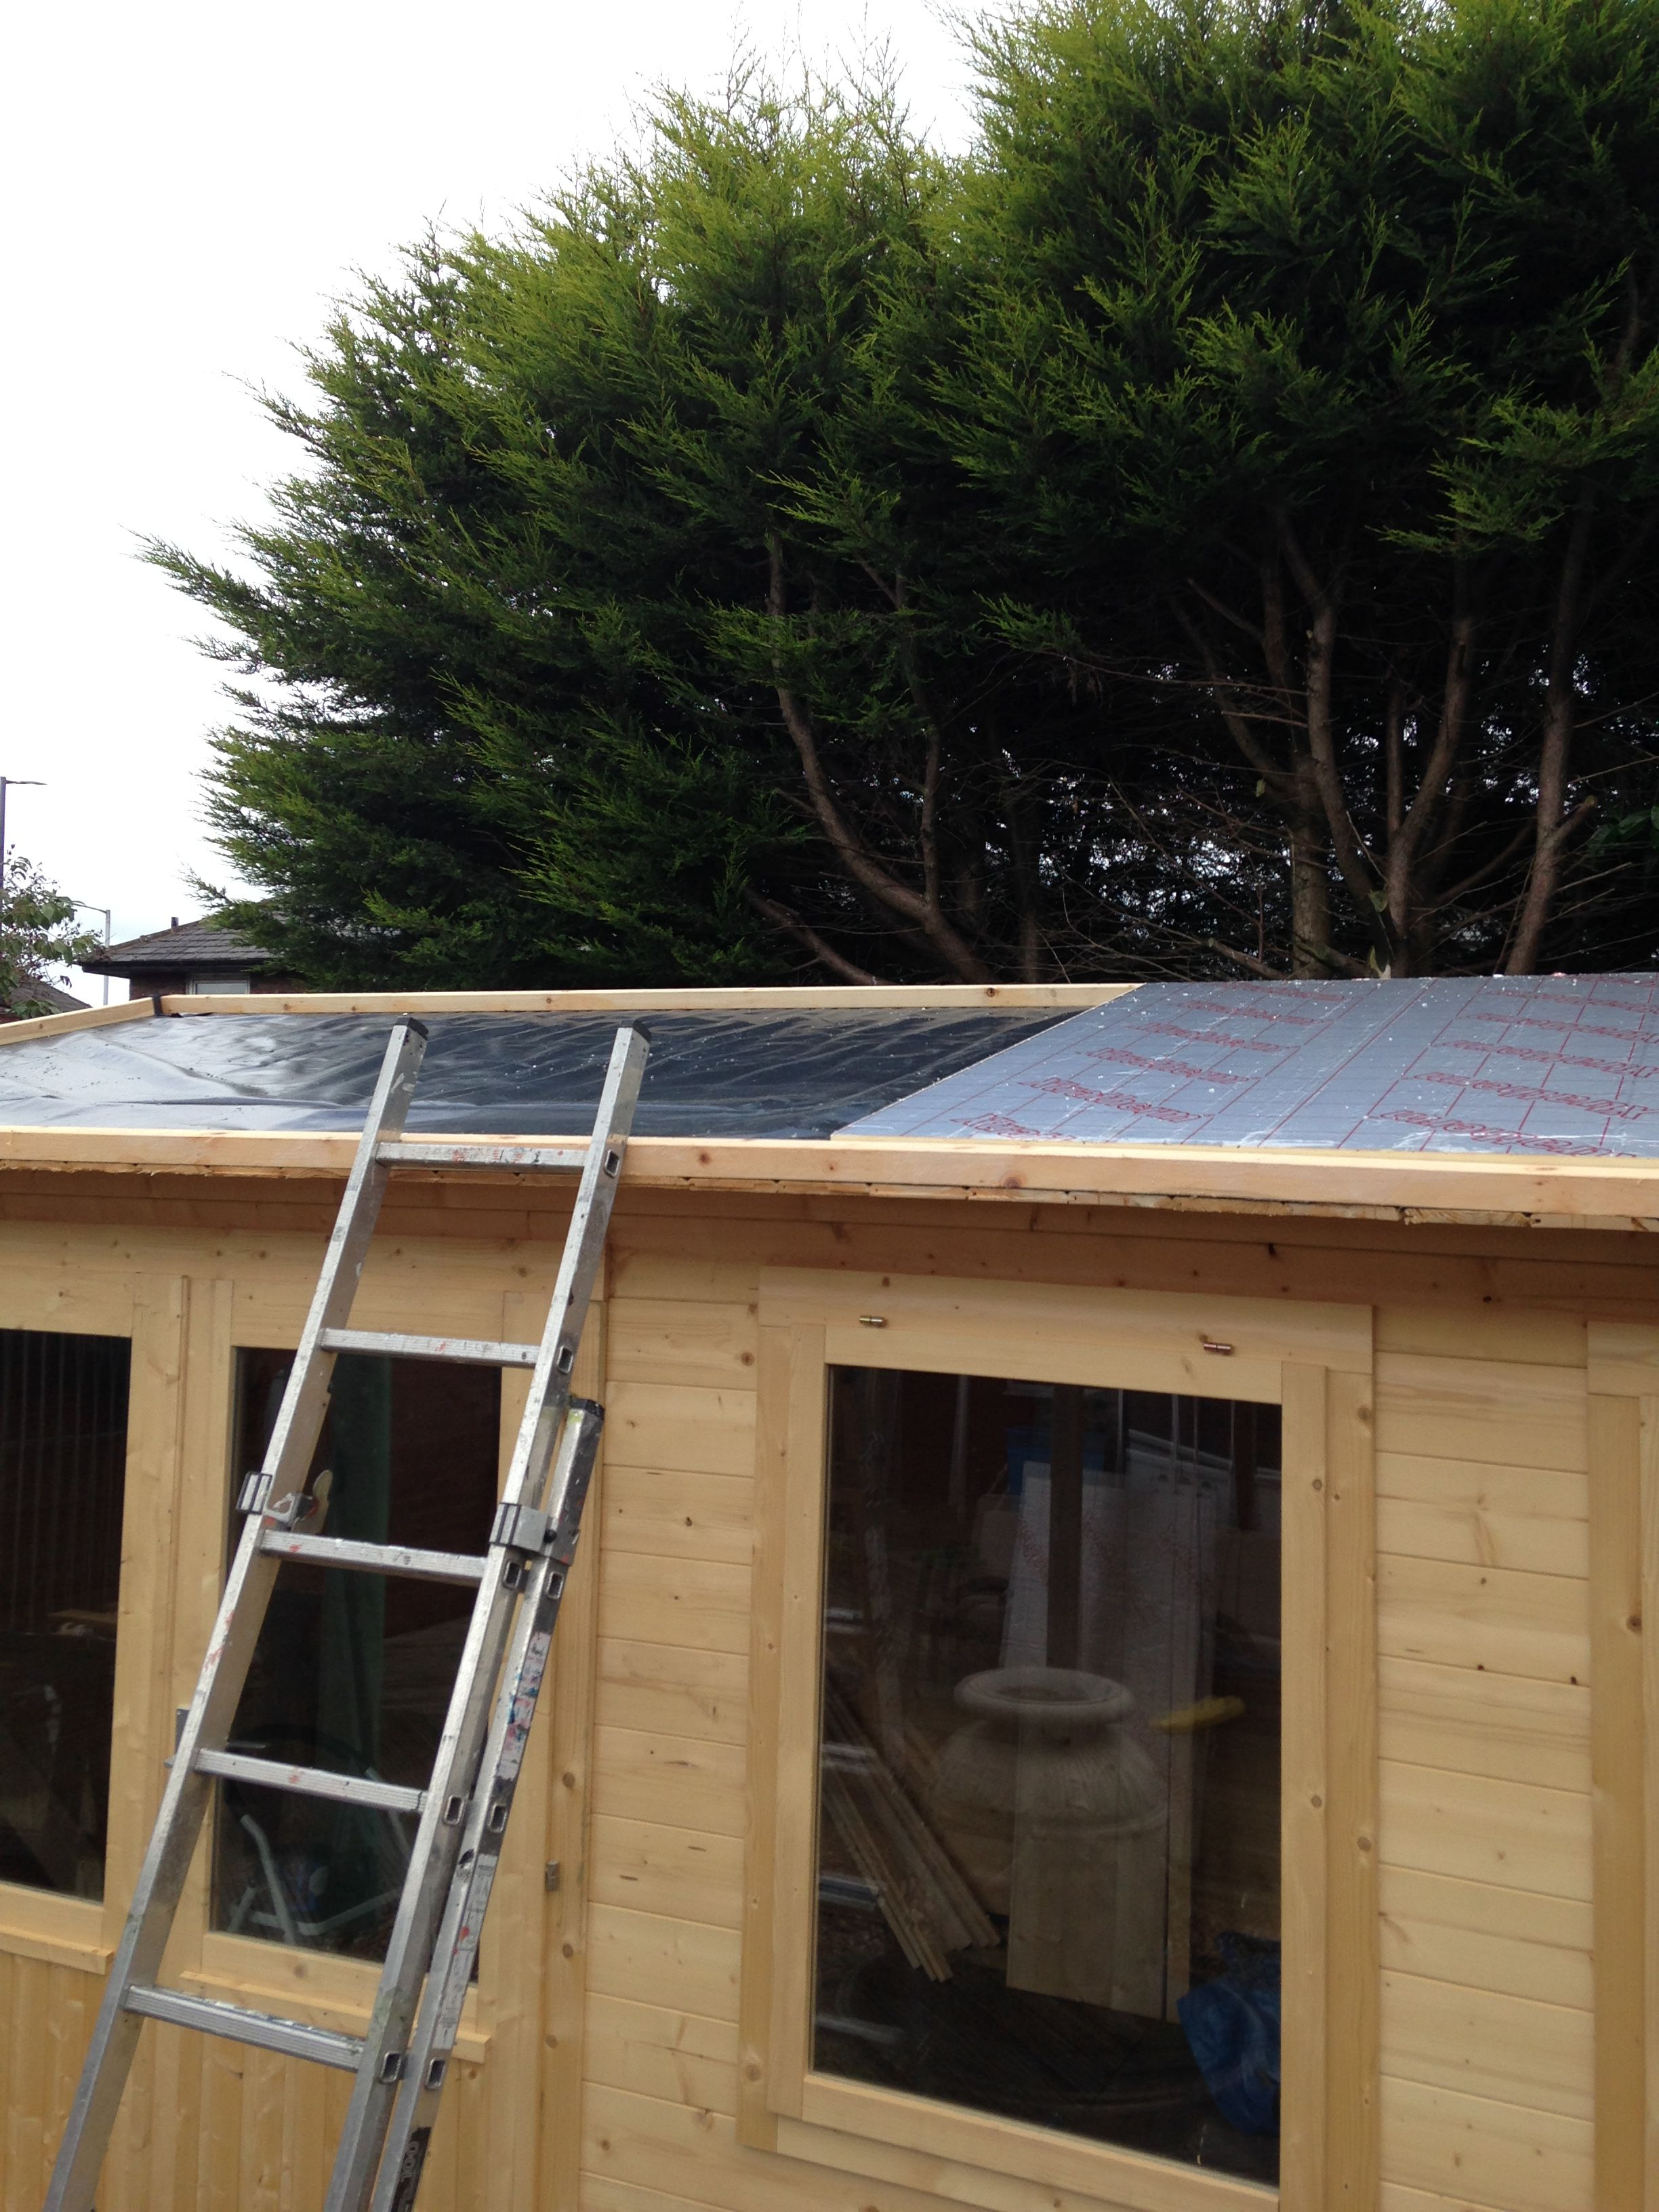 50mm Pir Insulation Loose Laid In Tray On Polythene Vapour Barrier On Timber Boarded Roof Garden Lodge Timber Boards